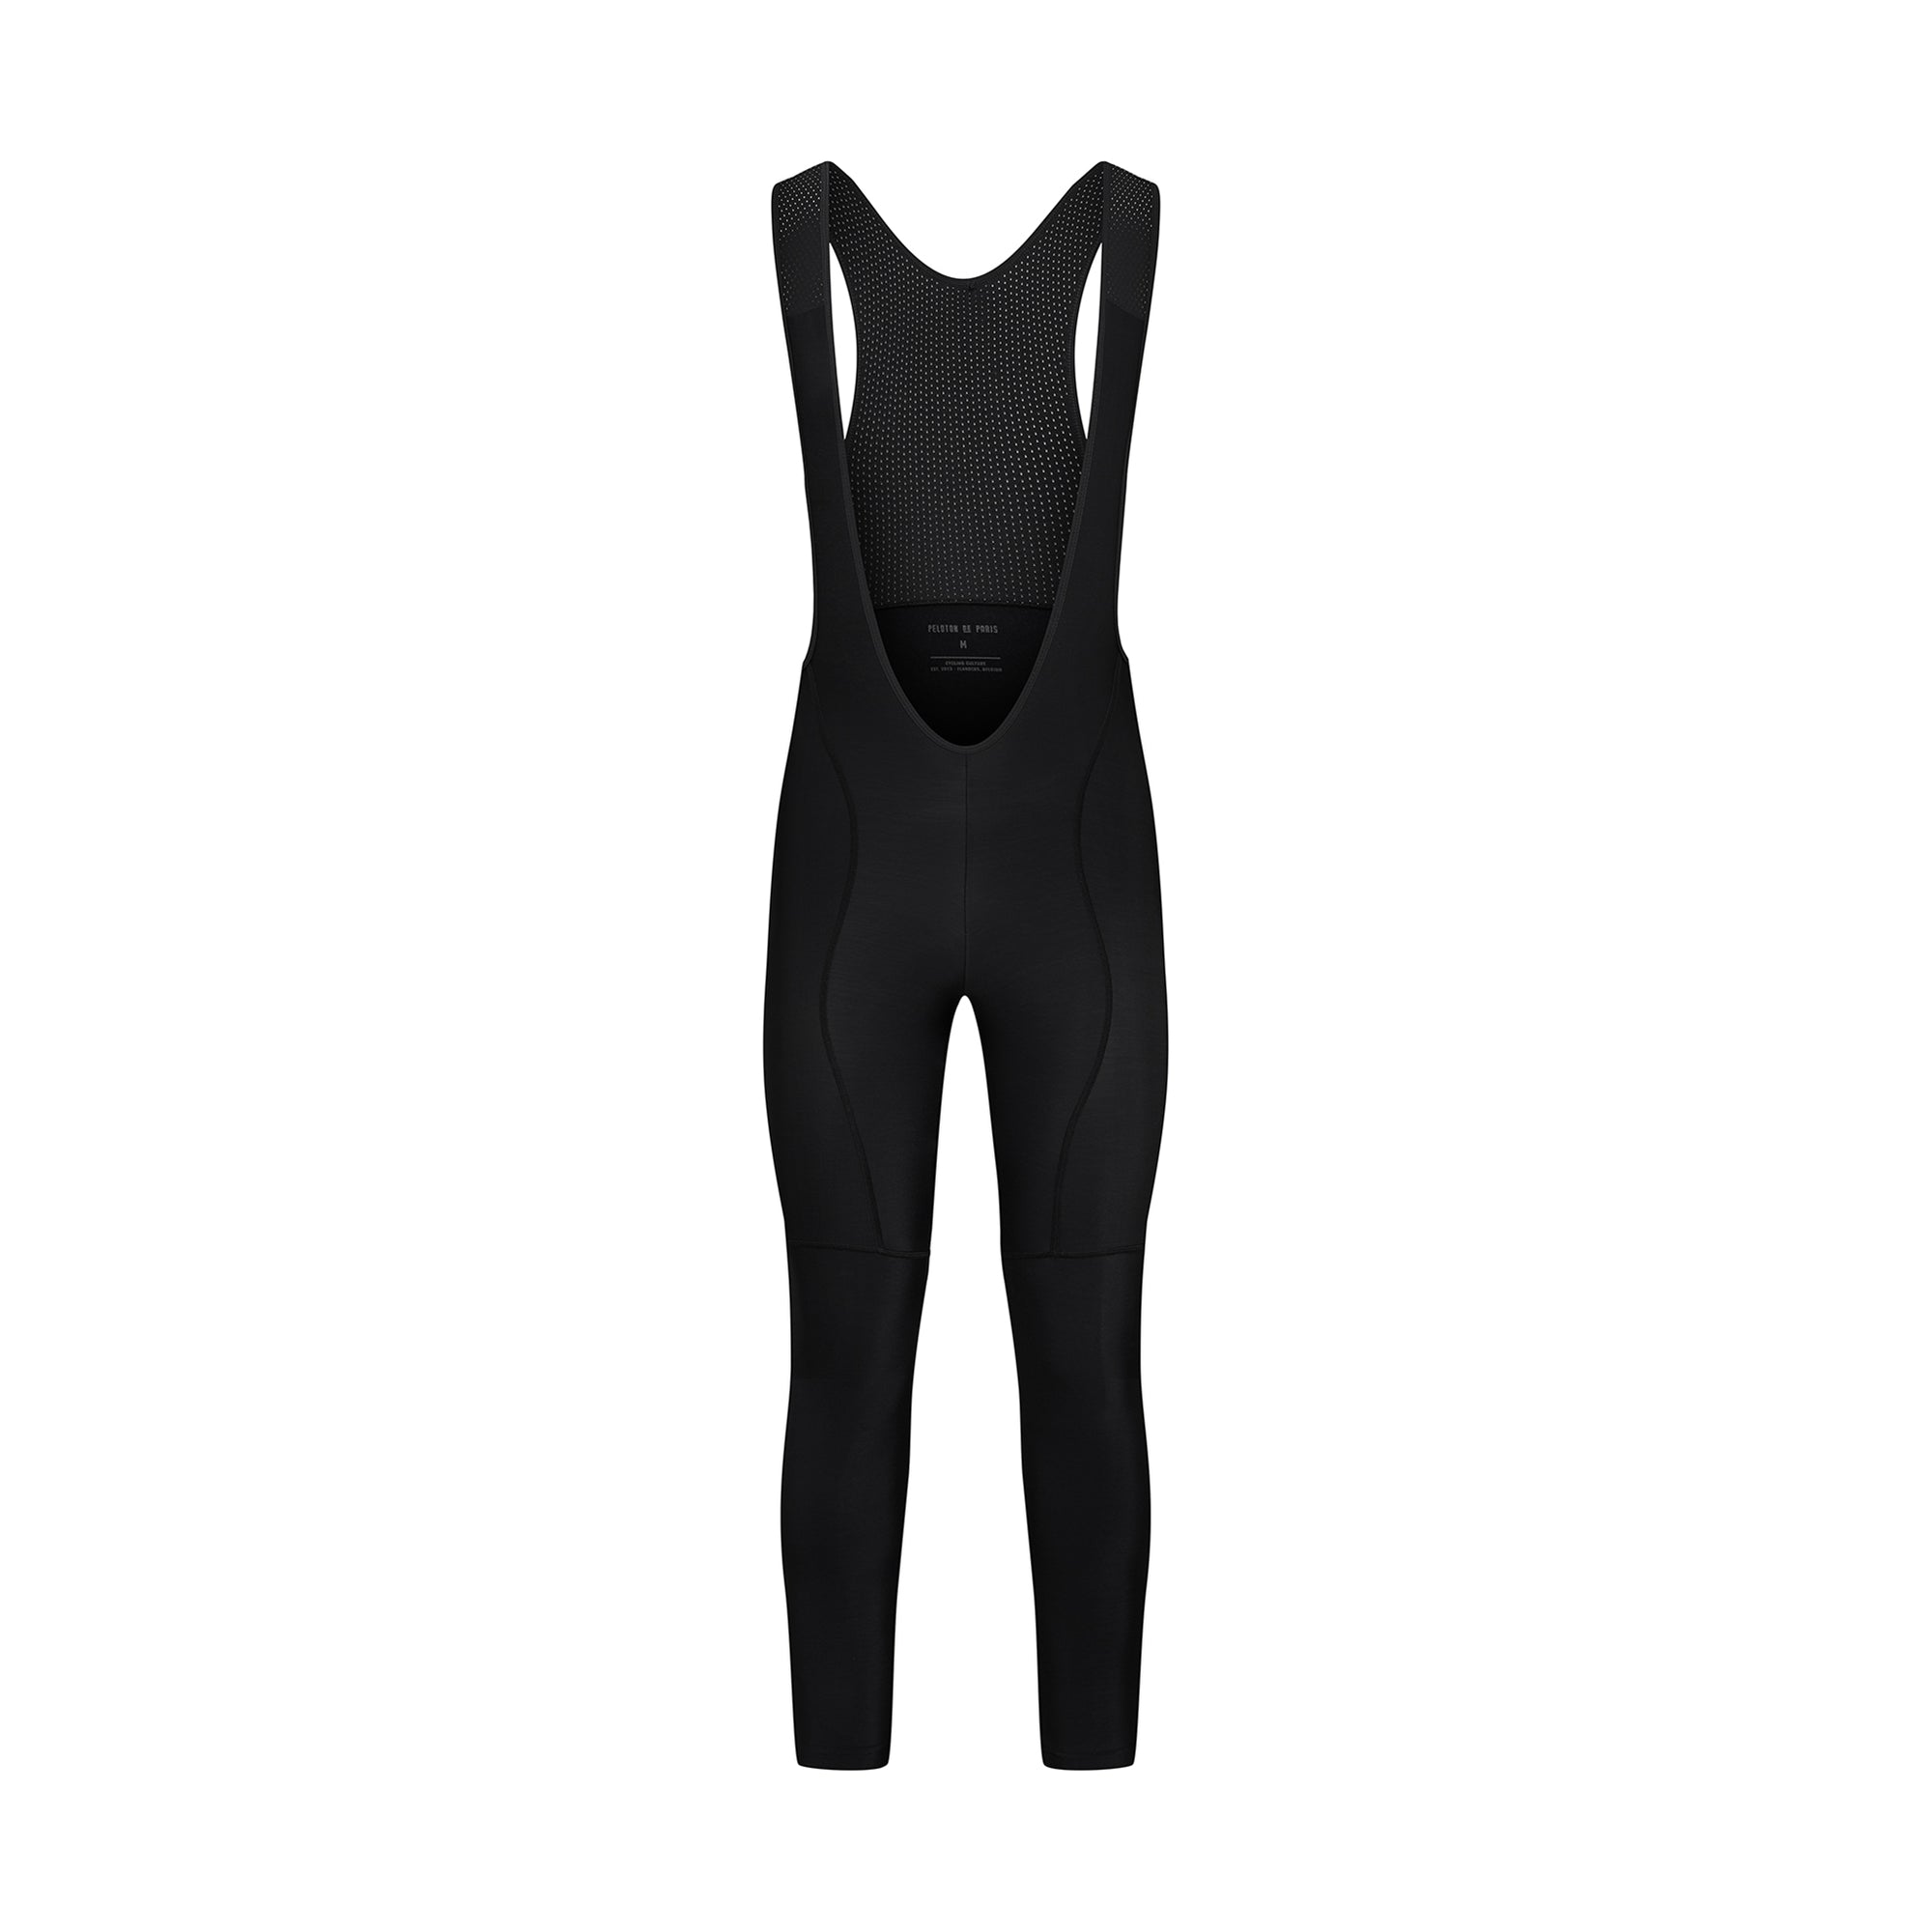 Domestique Hiver Black Bib Tights Women (no padding)